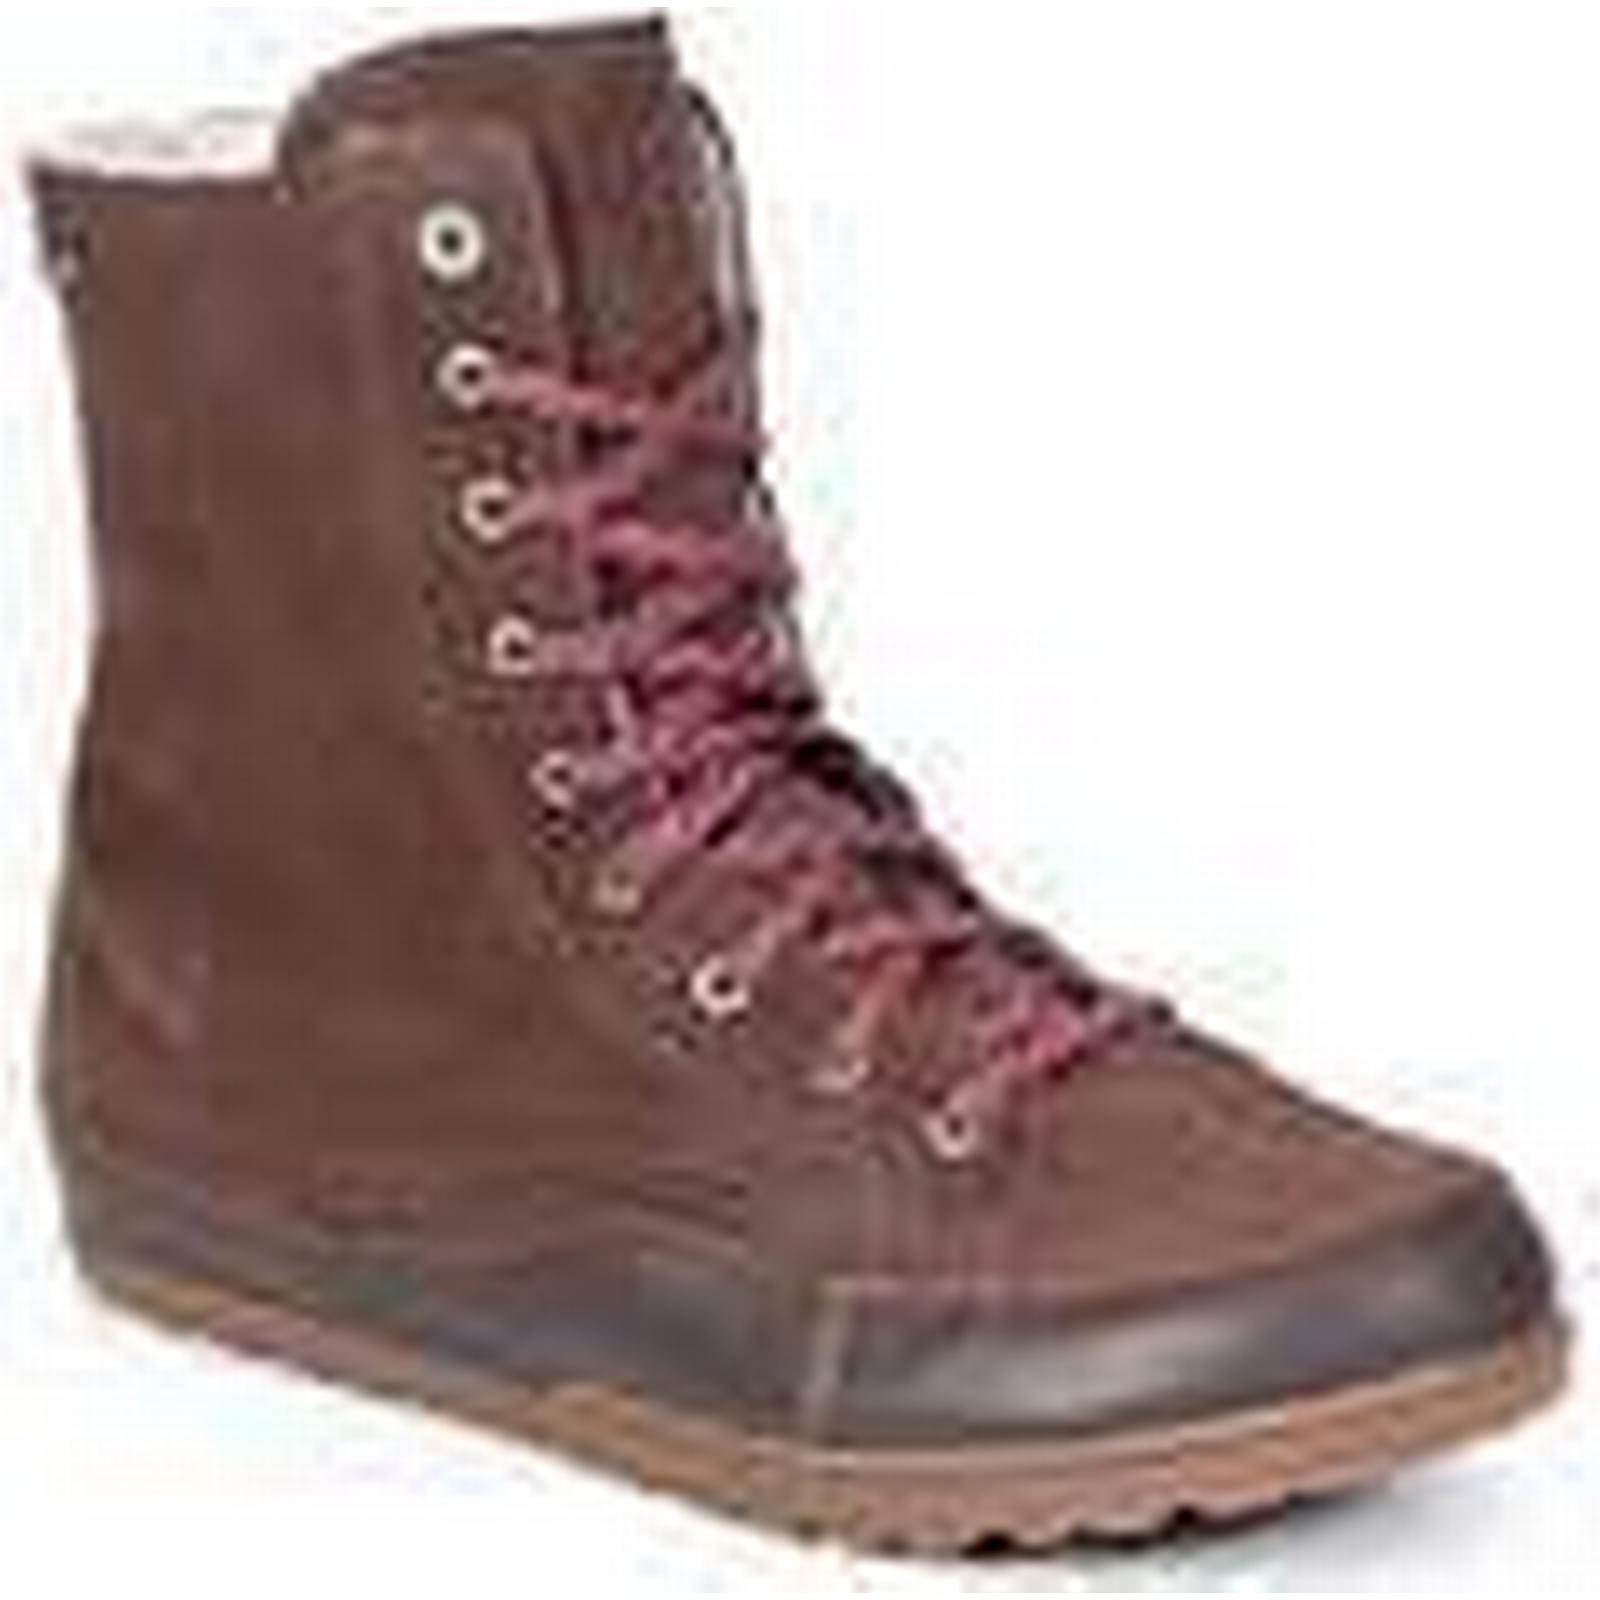 Patagonia  ACTIVIST ACTIVIST   women's Mid Boots in Brown 8515ed